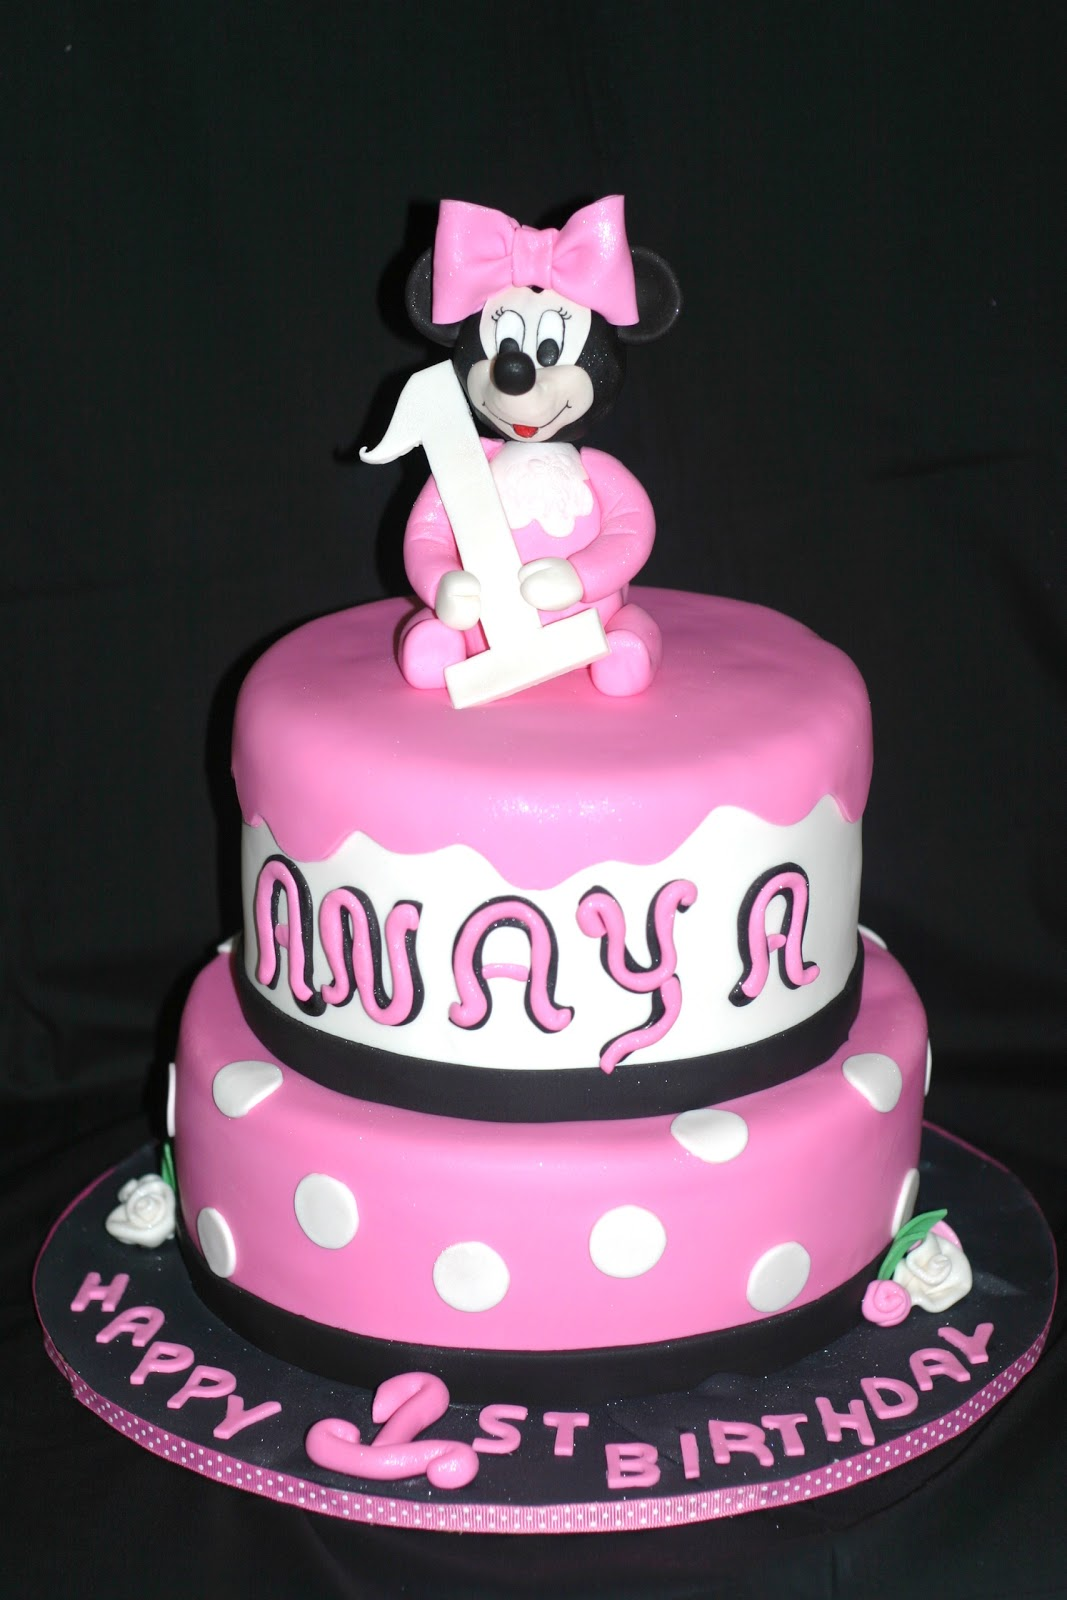 I Made The Minnie Mouse Head And Body Using Rice Crispy Treats Everything Else Is 50 Gumpaste Fondant 1 All White